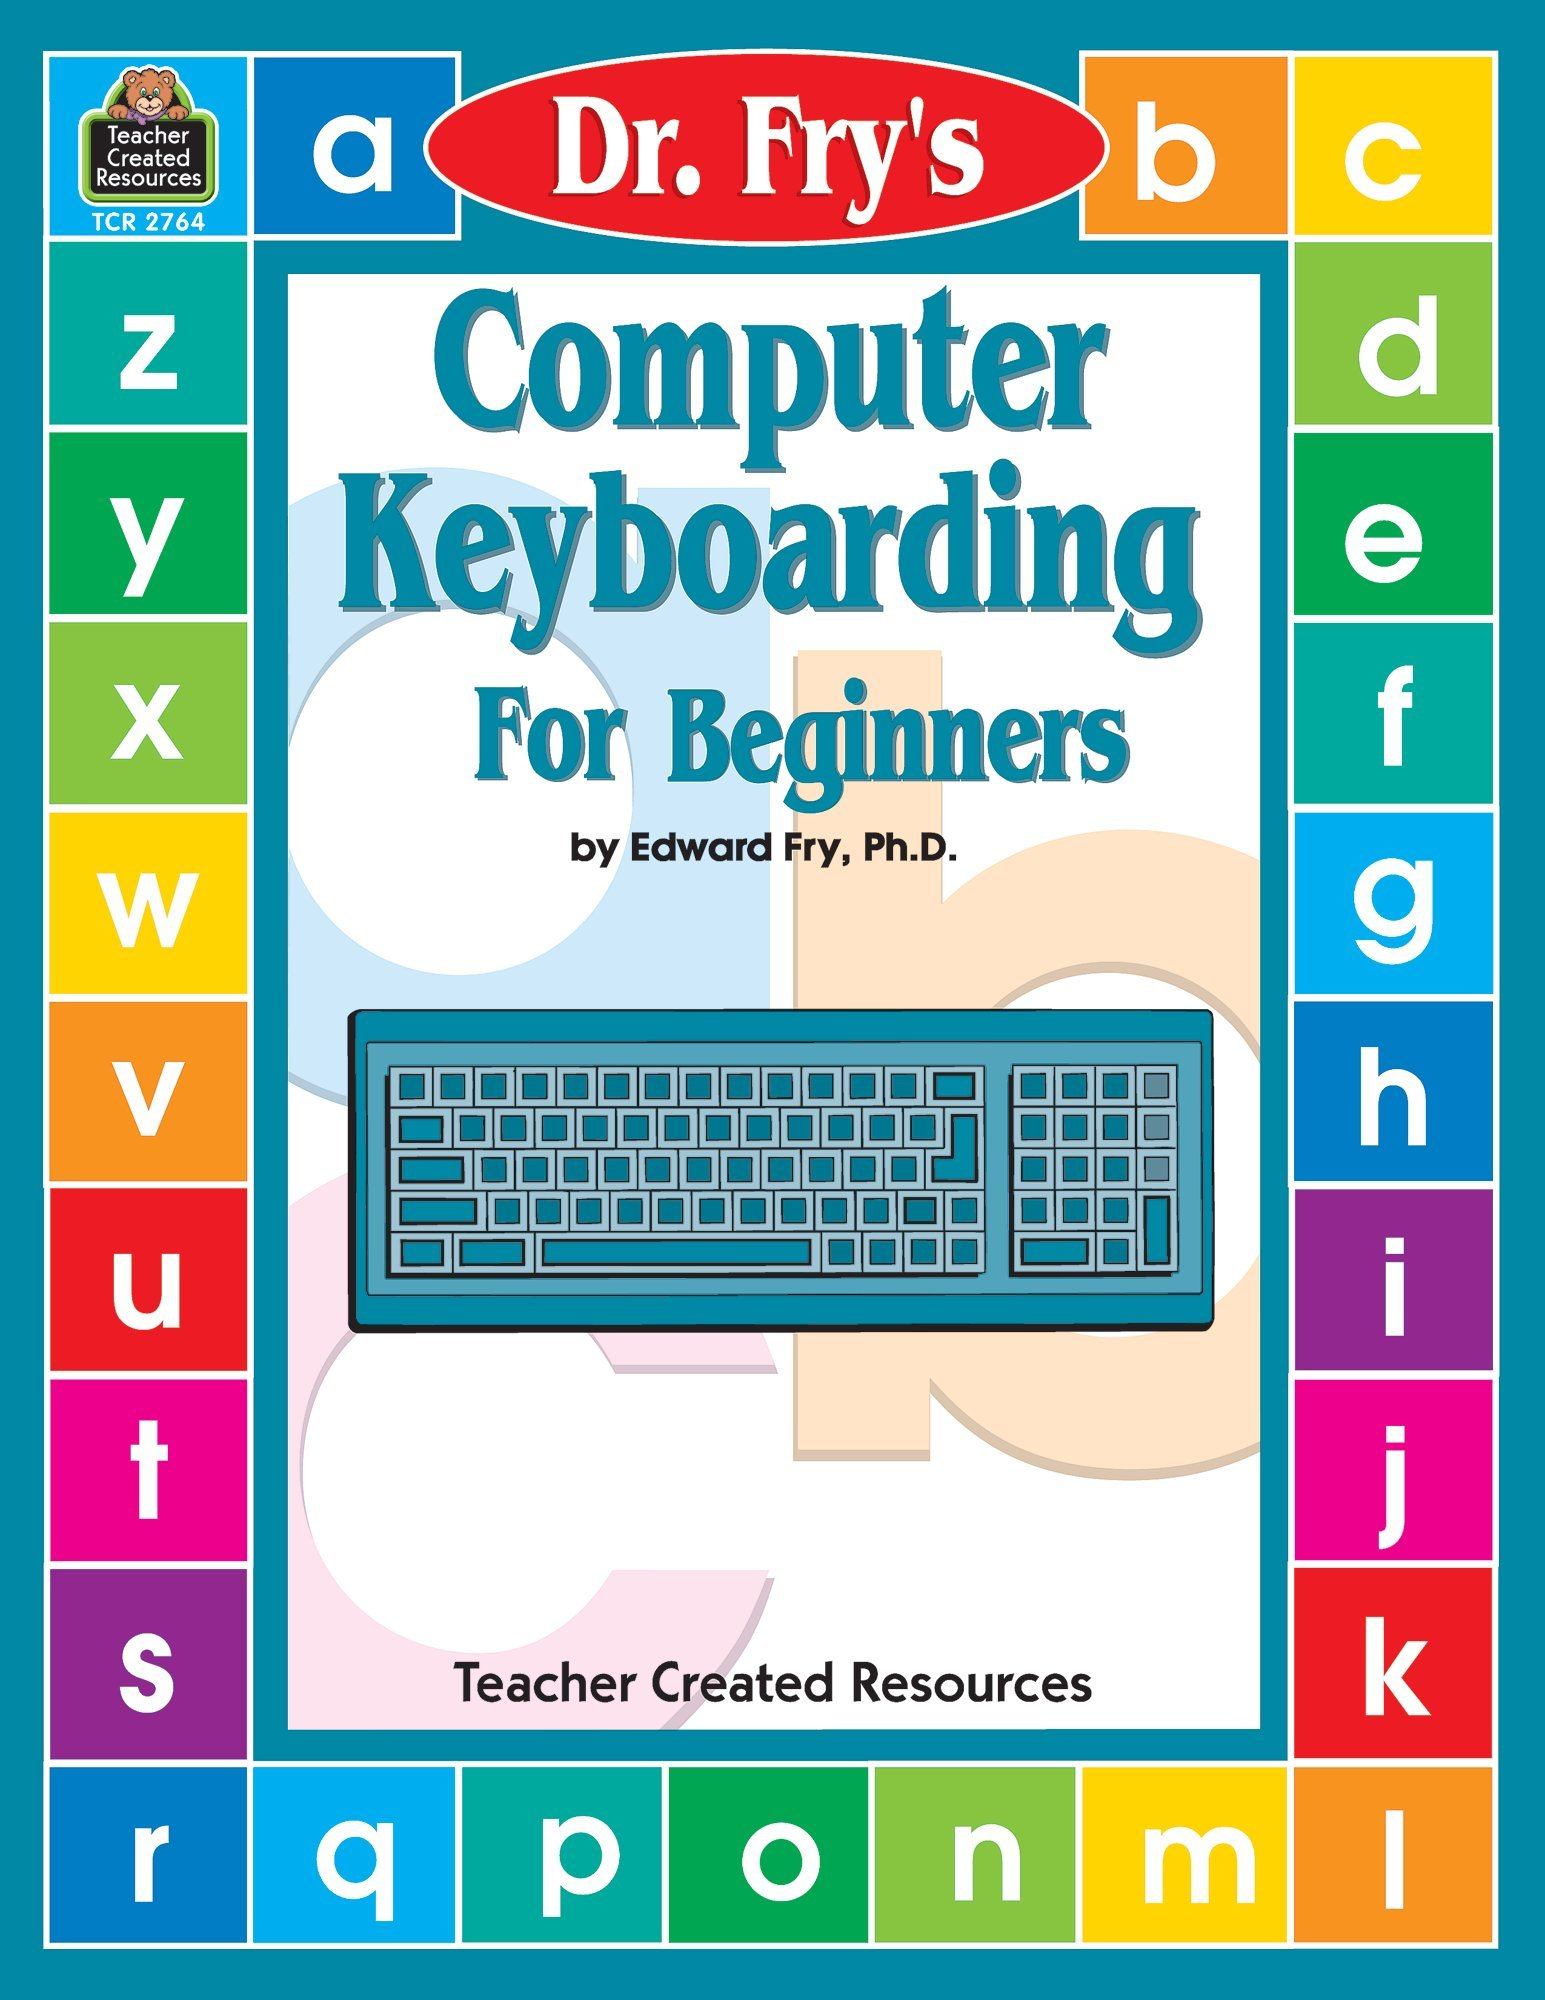 Computer keyboard tutorials for beginners.